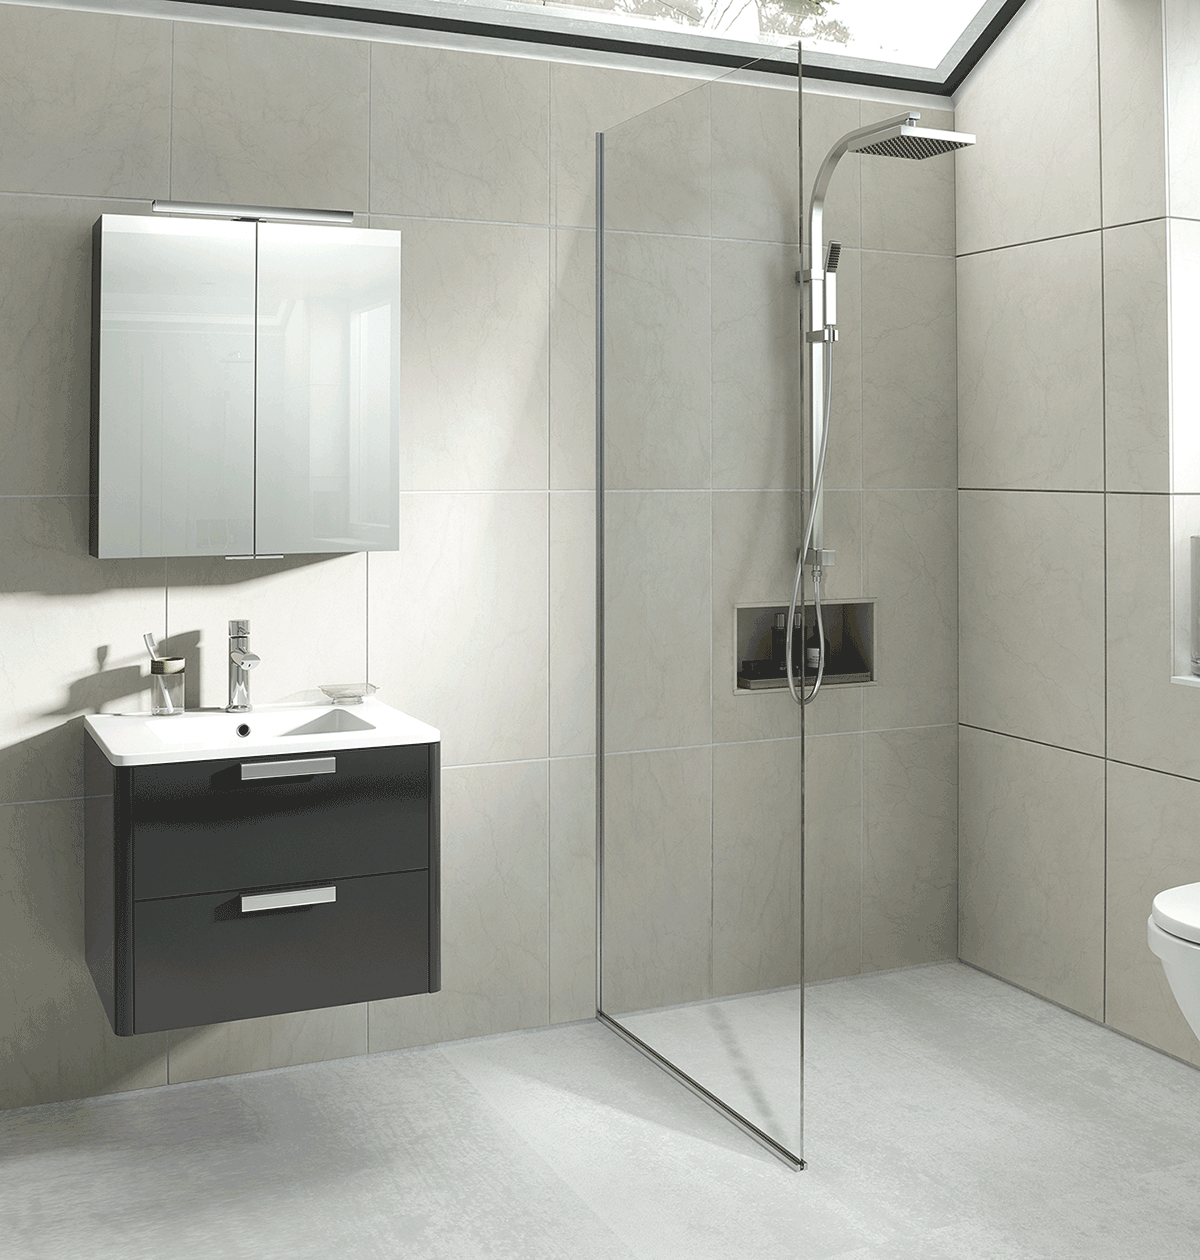 Hib kurve anthracite wetroom roomset